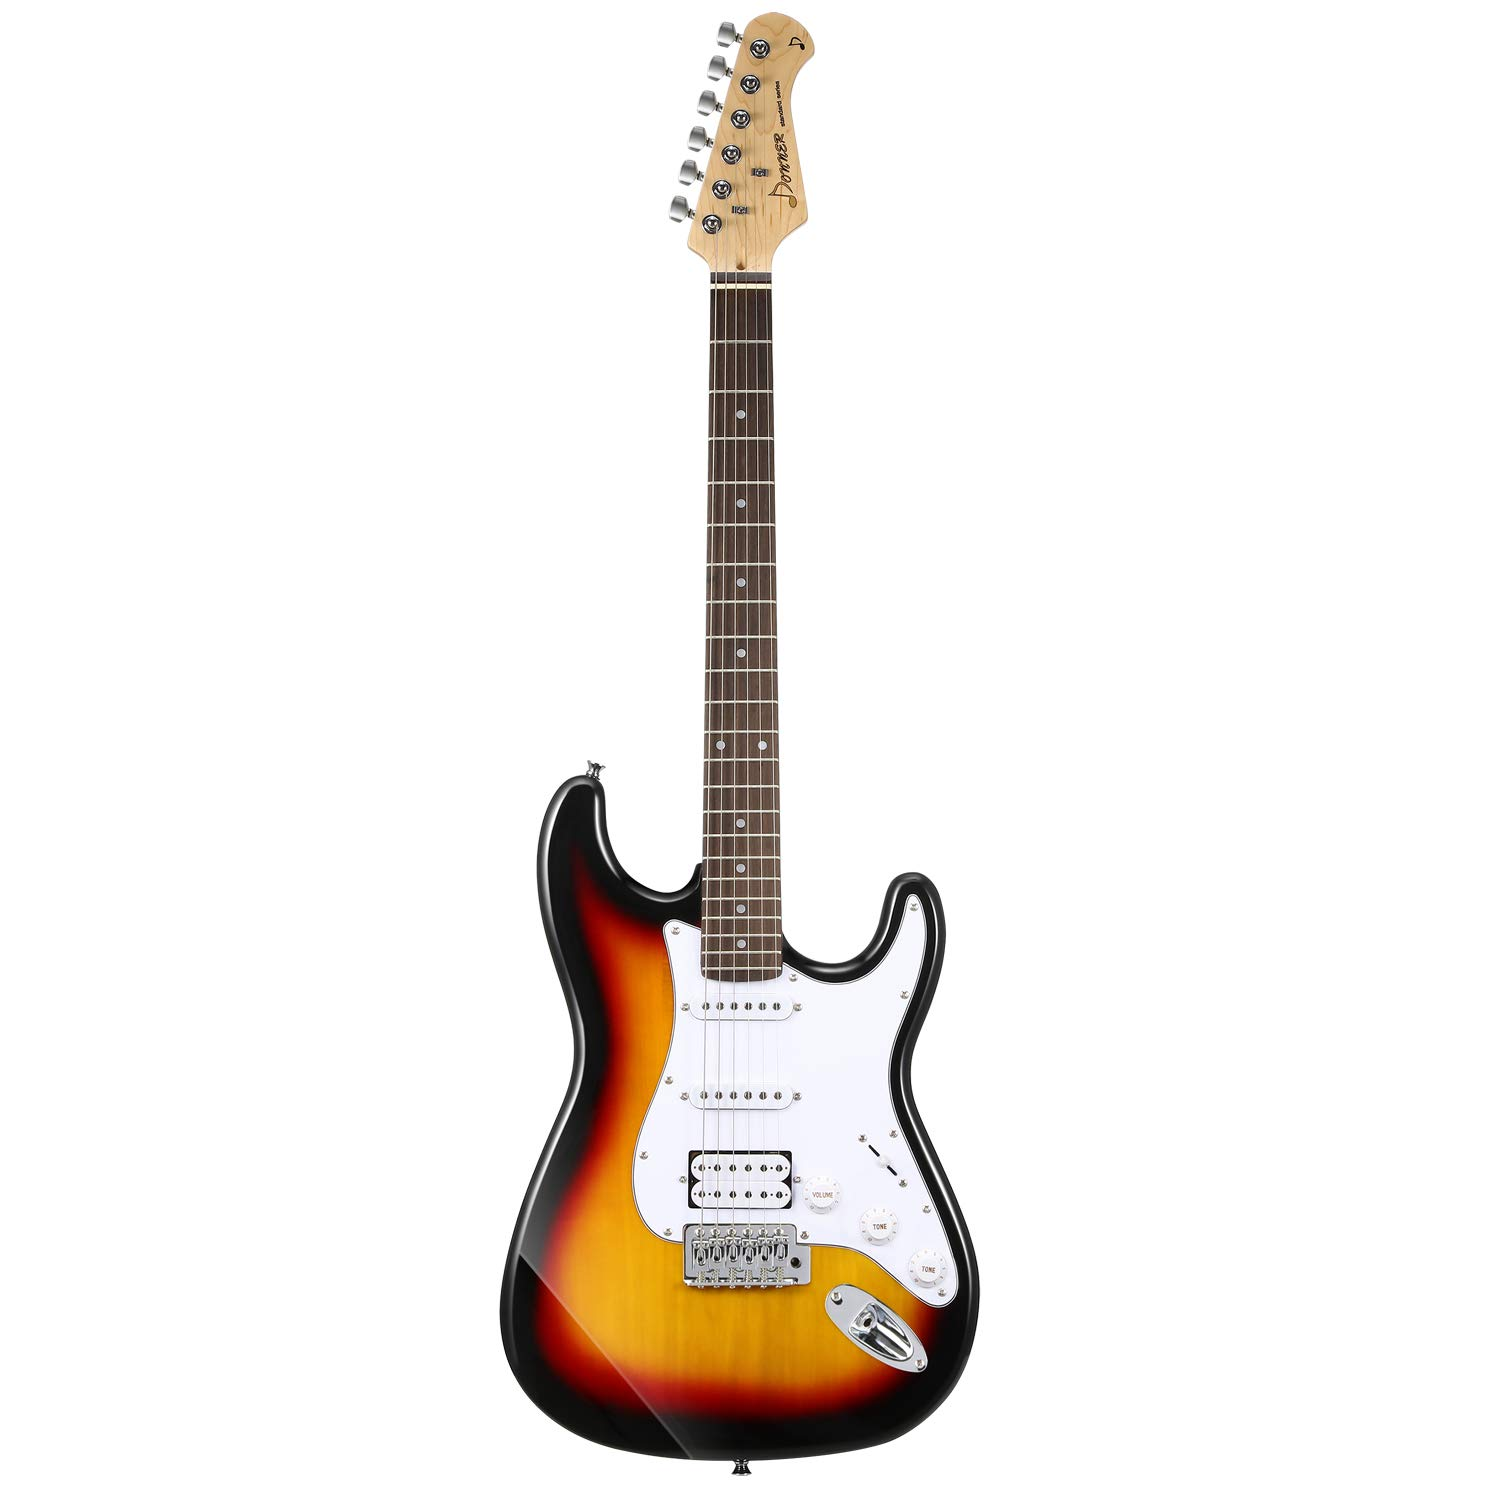 Front View of the Donner DST-1S Sunburst Electric Guitar